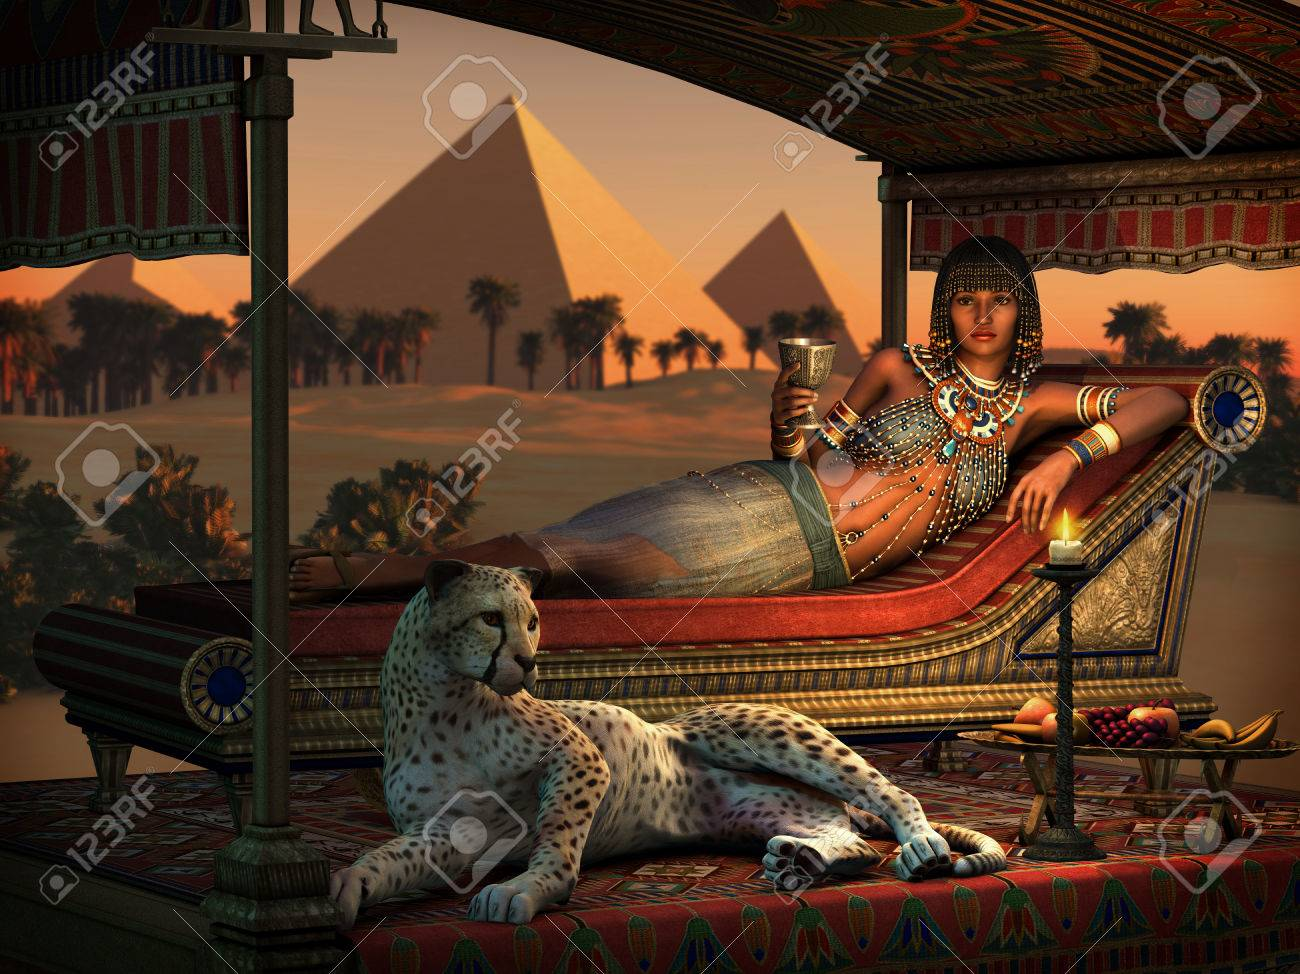 3d computer graphics of an ancient Egyptian lady and a tame cheetah - 70871995